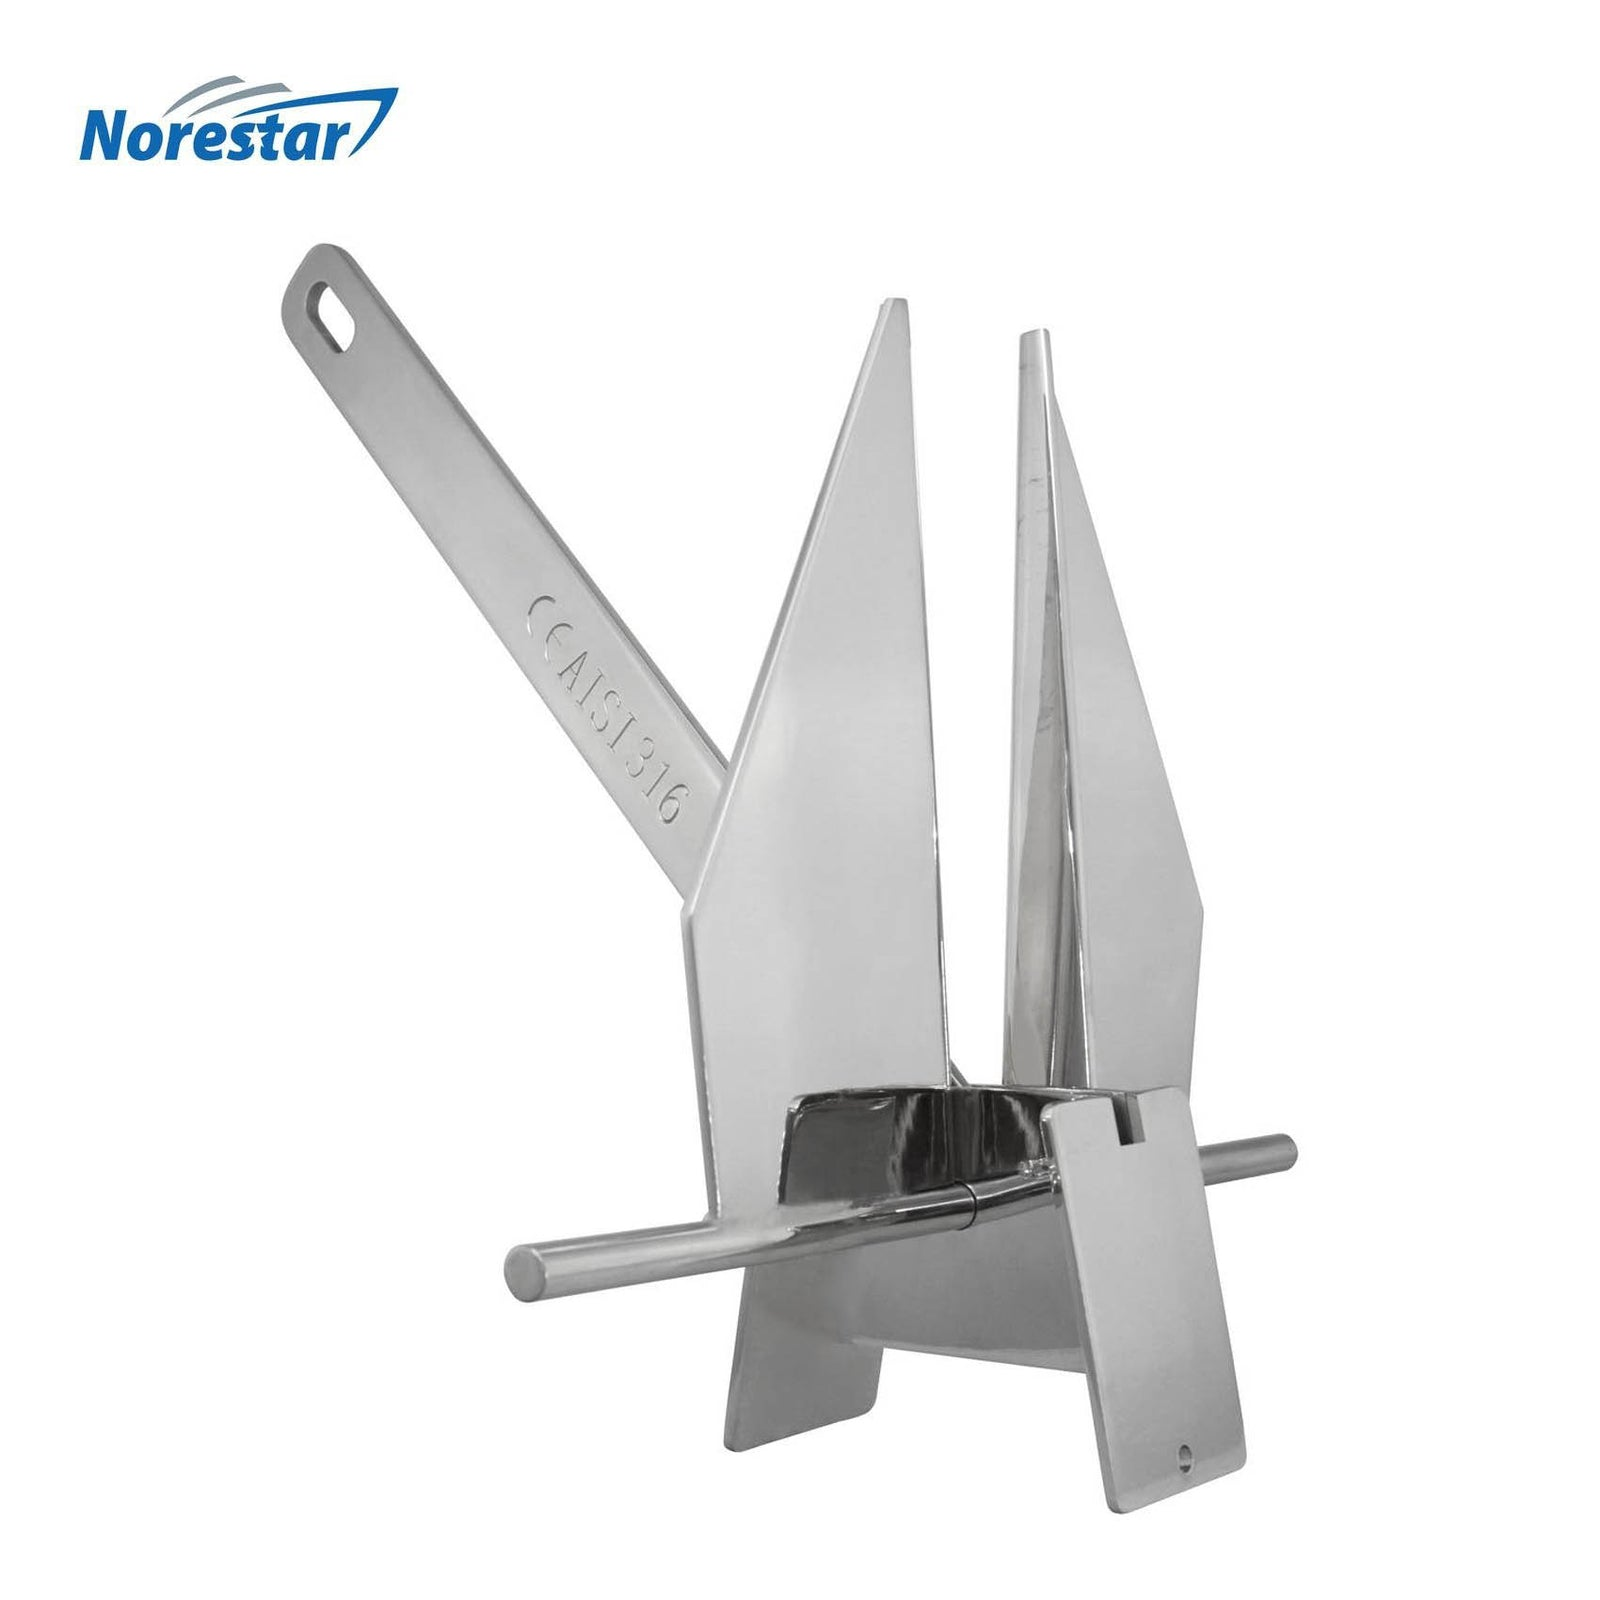 Stainless Steel Danforth/Fluke Boat Anchor by Norestar